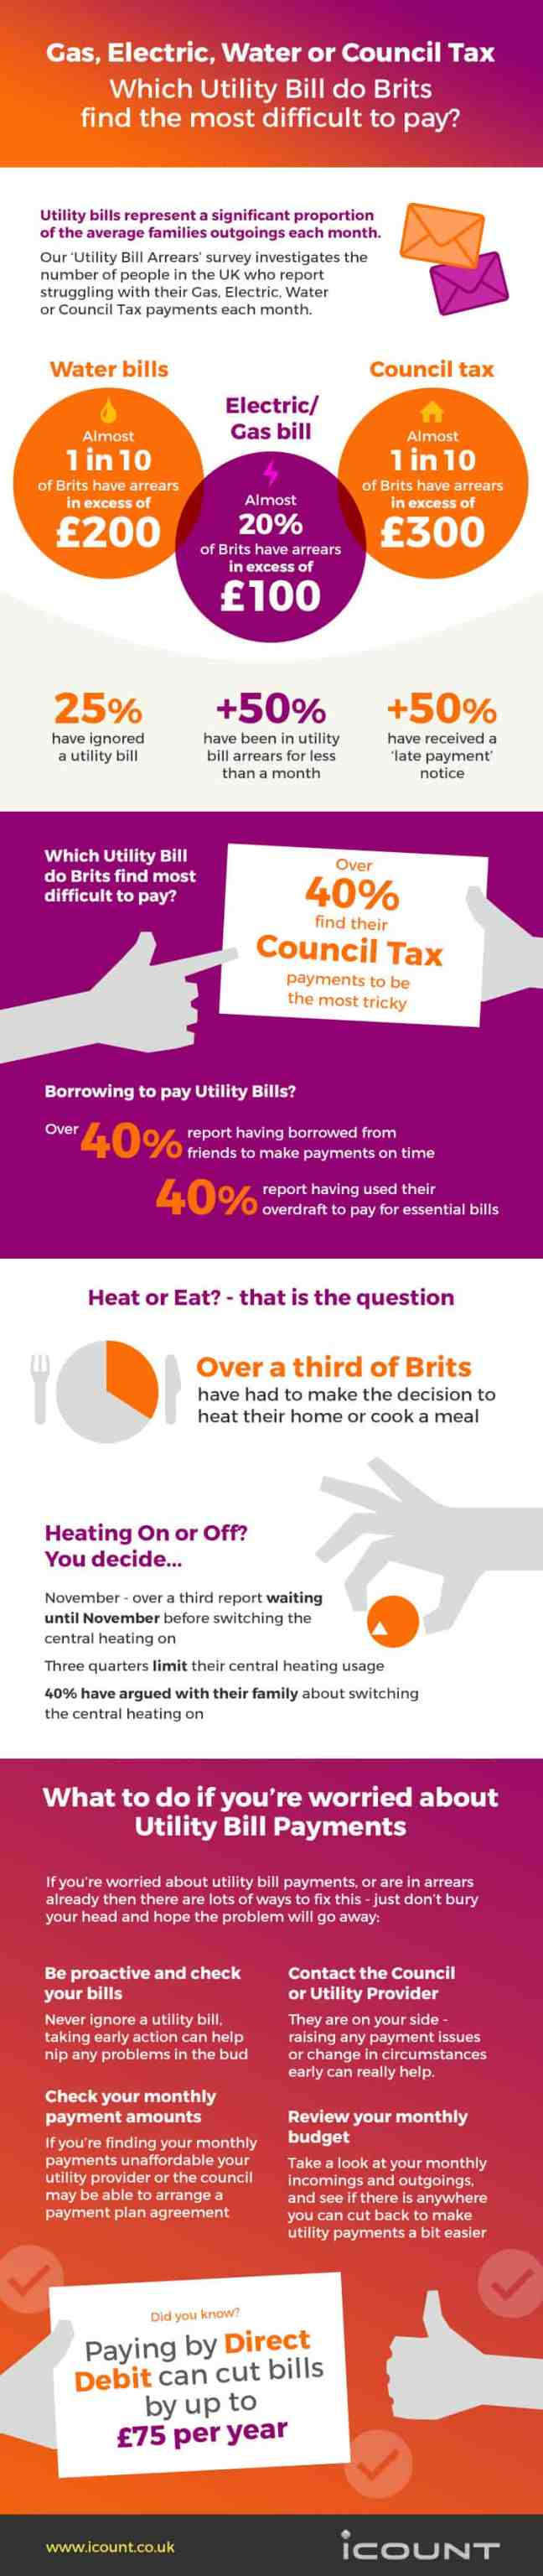 Which utility bills do Brits find the most difficult to pay - infographic